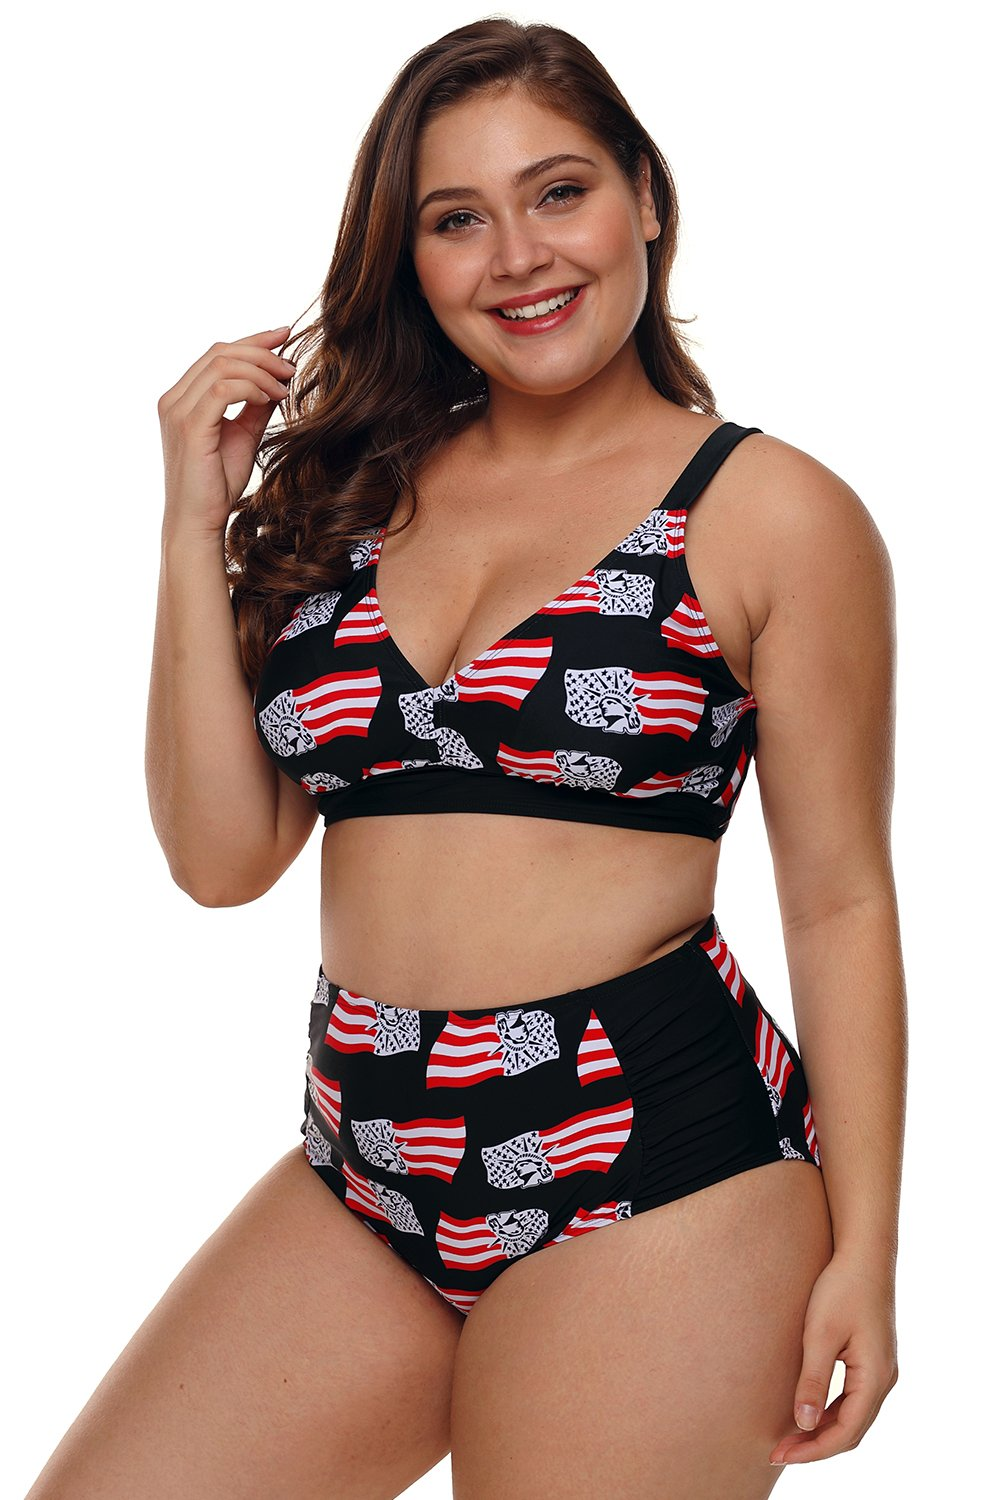 Statue of Liberty American Flag High Waisted Swimsuit